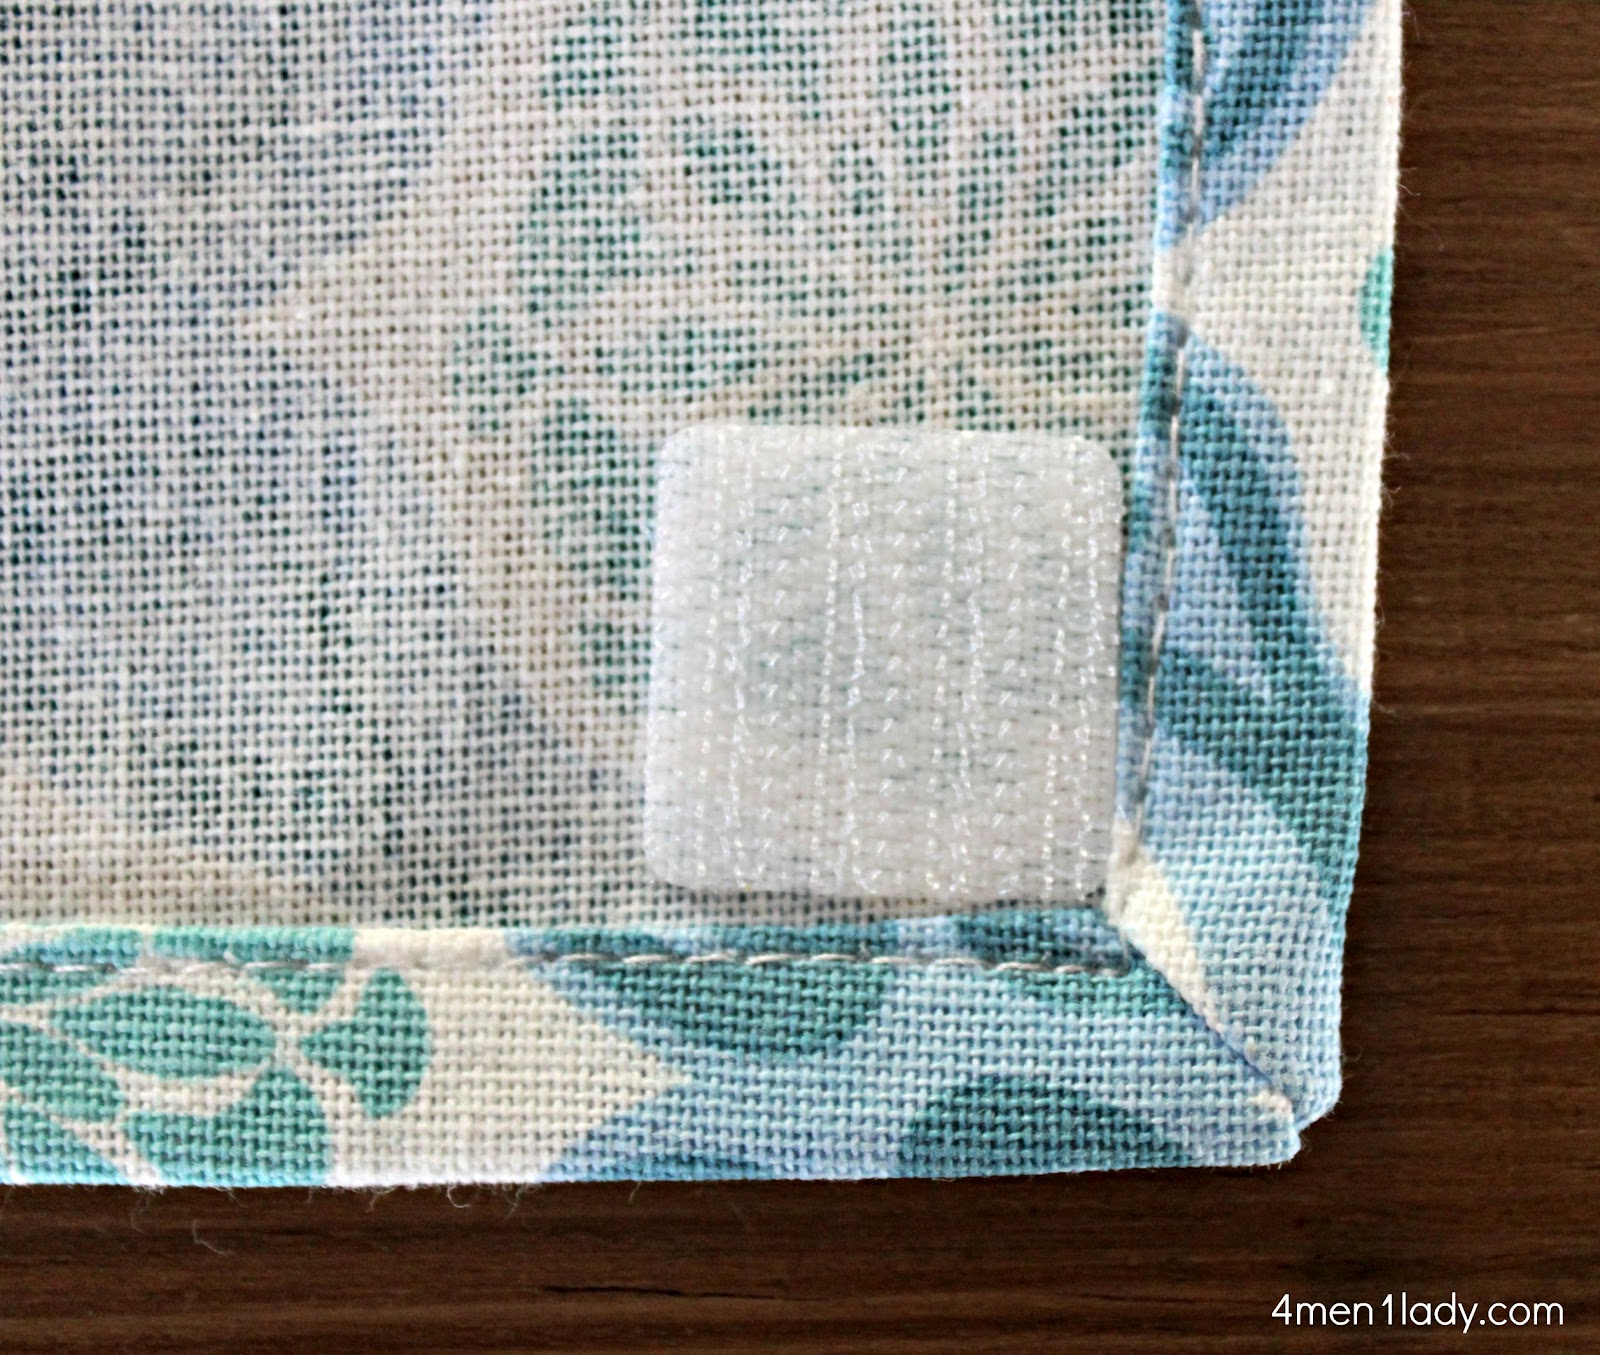 Easy fix for hanging dish towels.